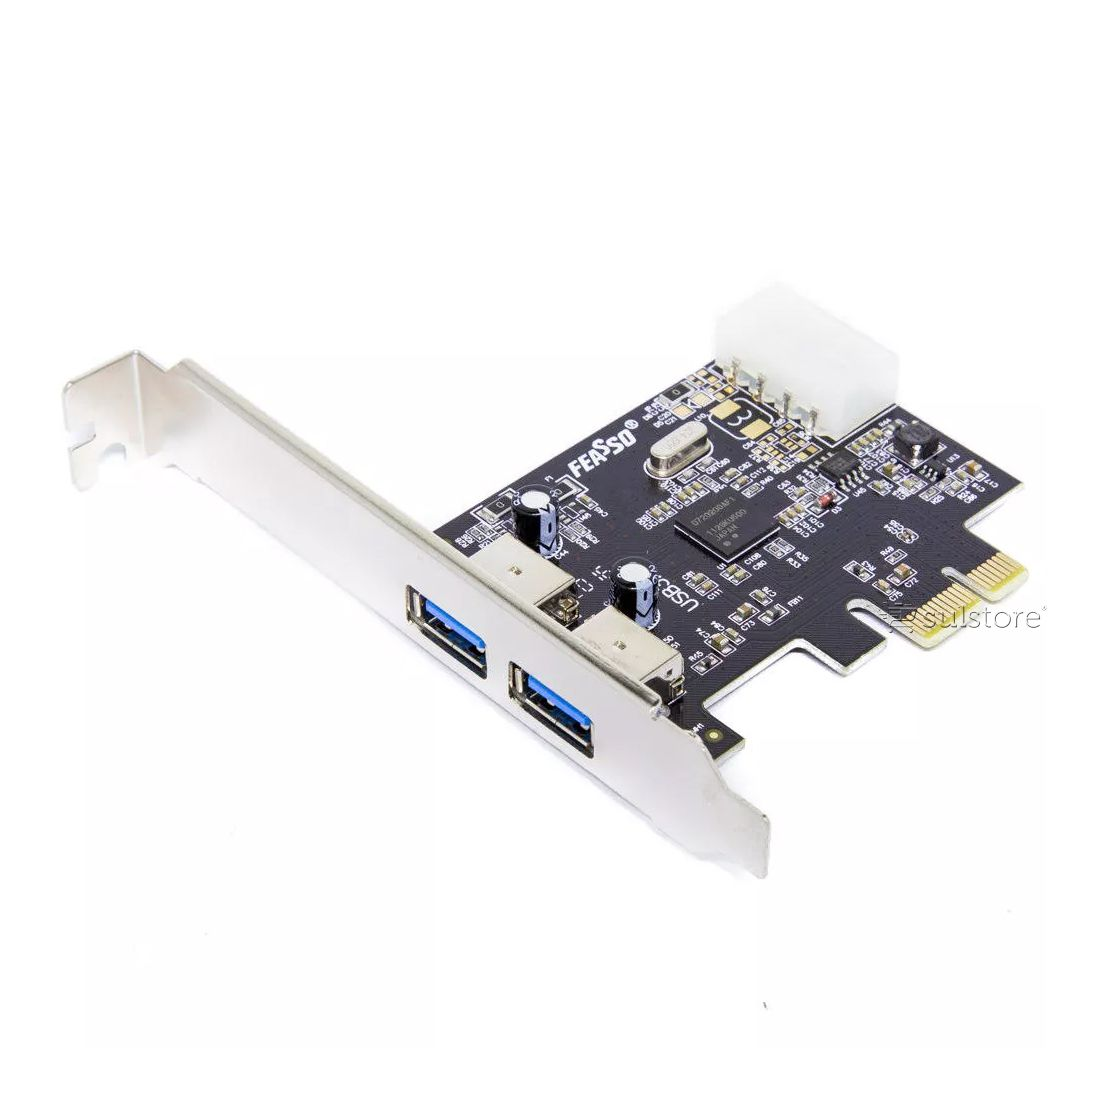 Placa USB 3.0 PCI Express X1 2 Portas Com Low Profile Perfil Baixo Feasso JPU-03